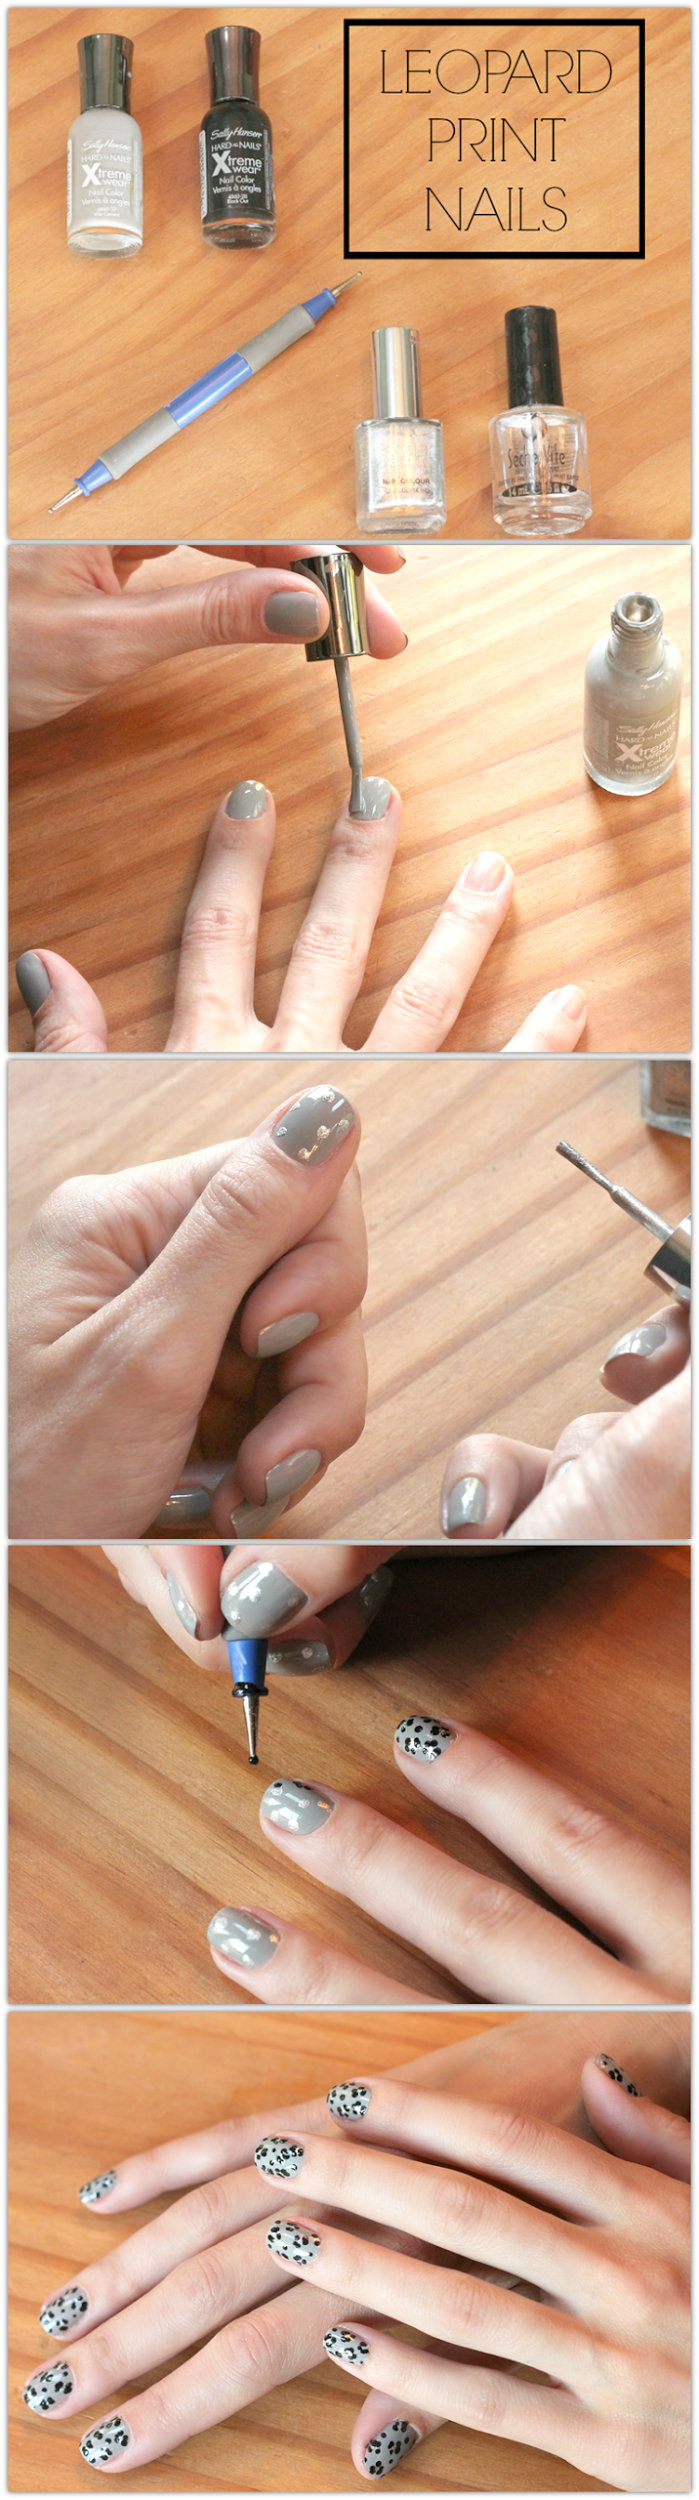 Leopard Print Nails | Leopard print nails, Leopards and Manicure